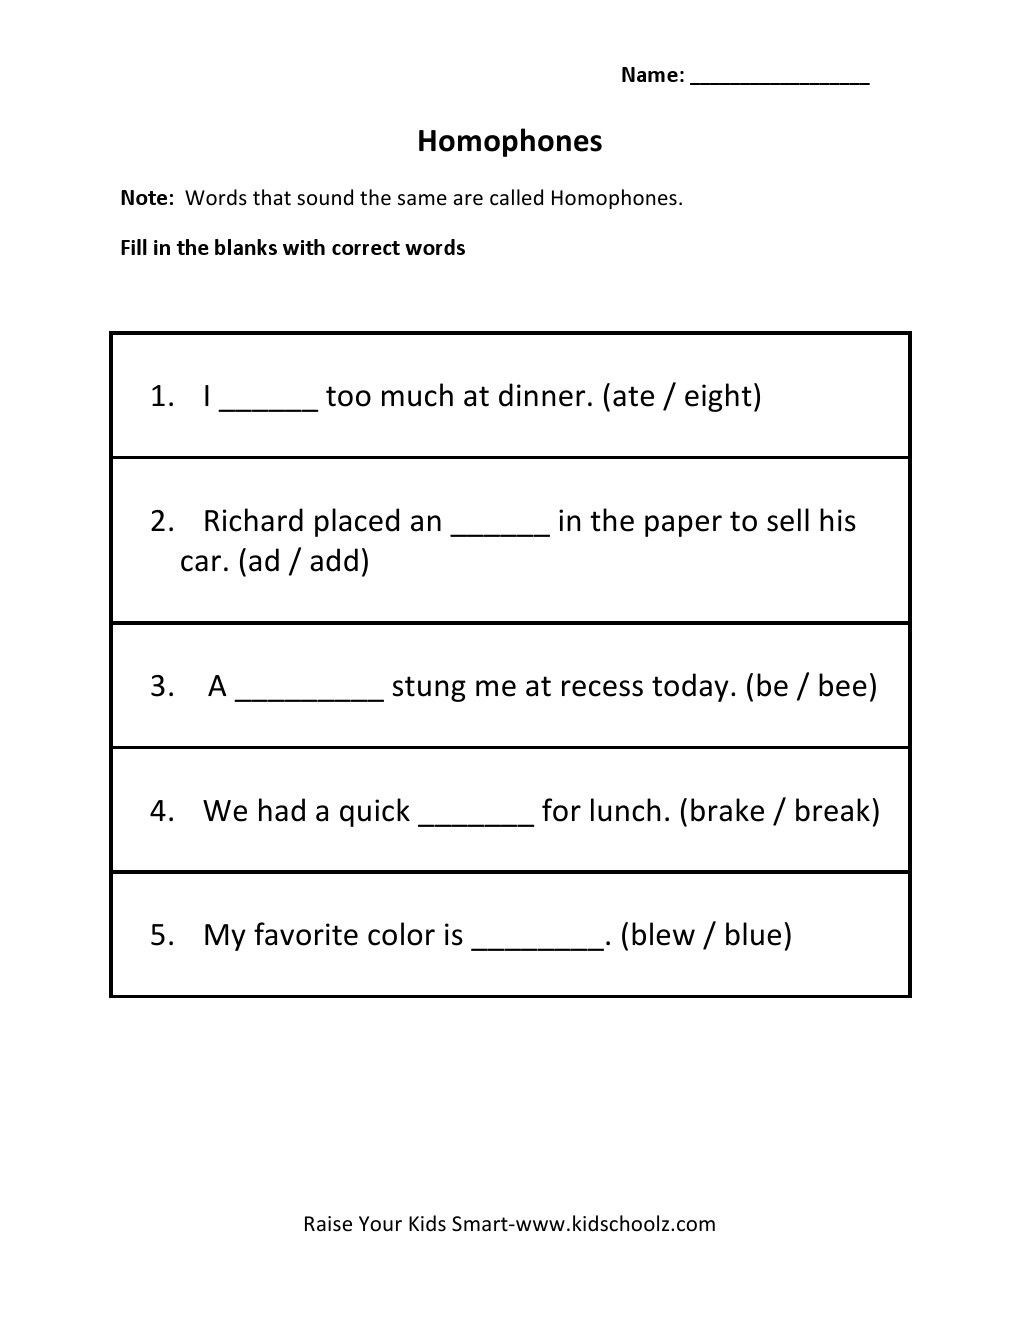 Homophones Worksheets for Grade 2 Wp Content 2014 09 Homophones 1